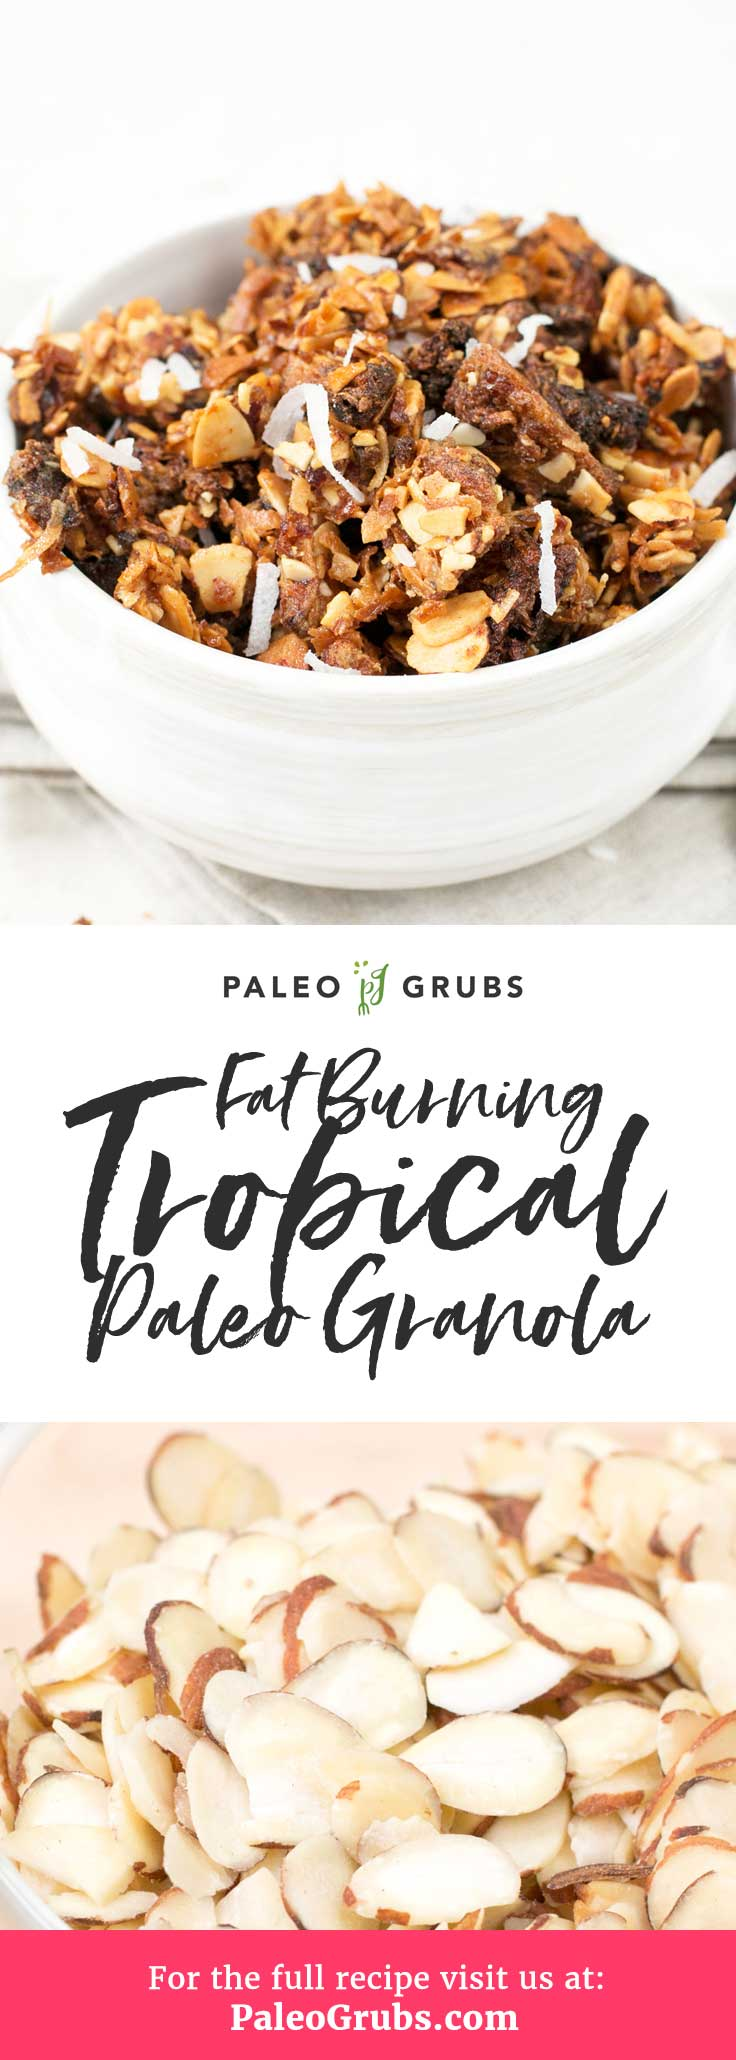 This is the ultimate homemade Paleo granola! Pretty hard to top this recipe.